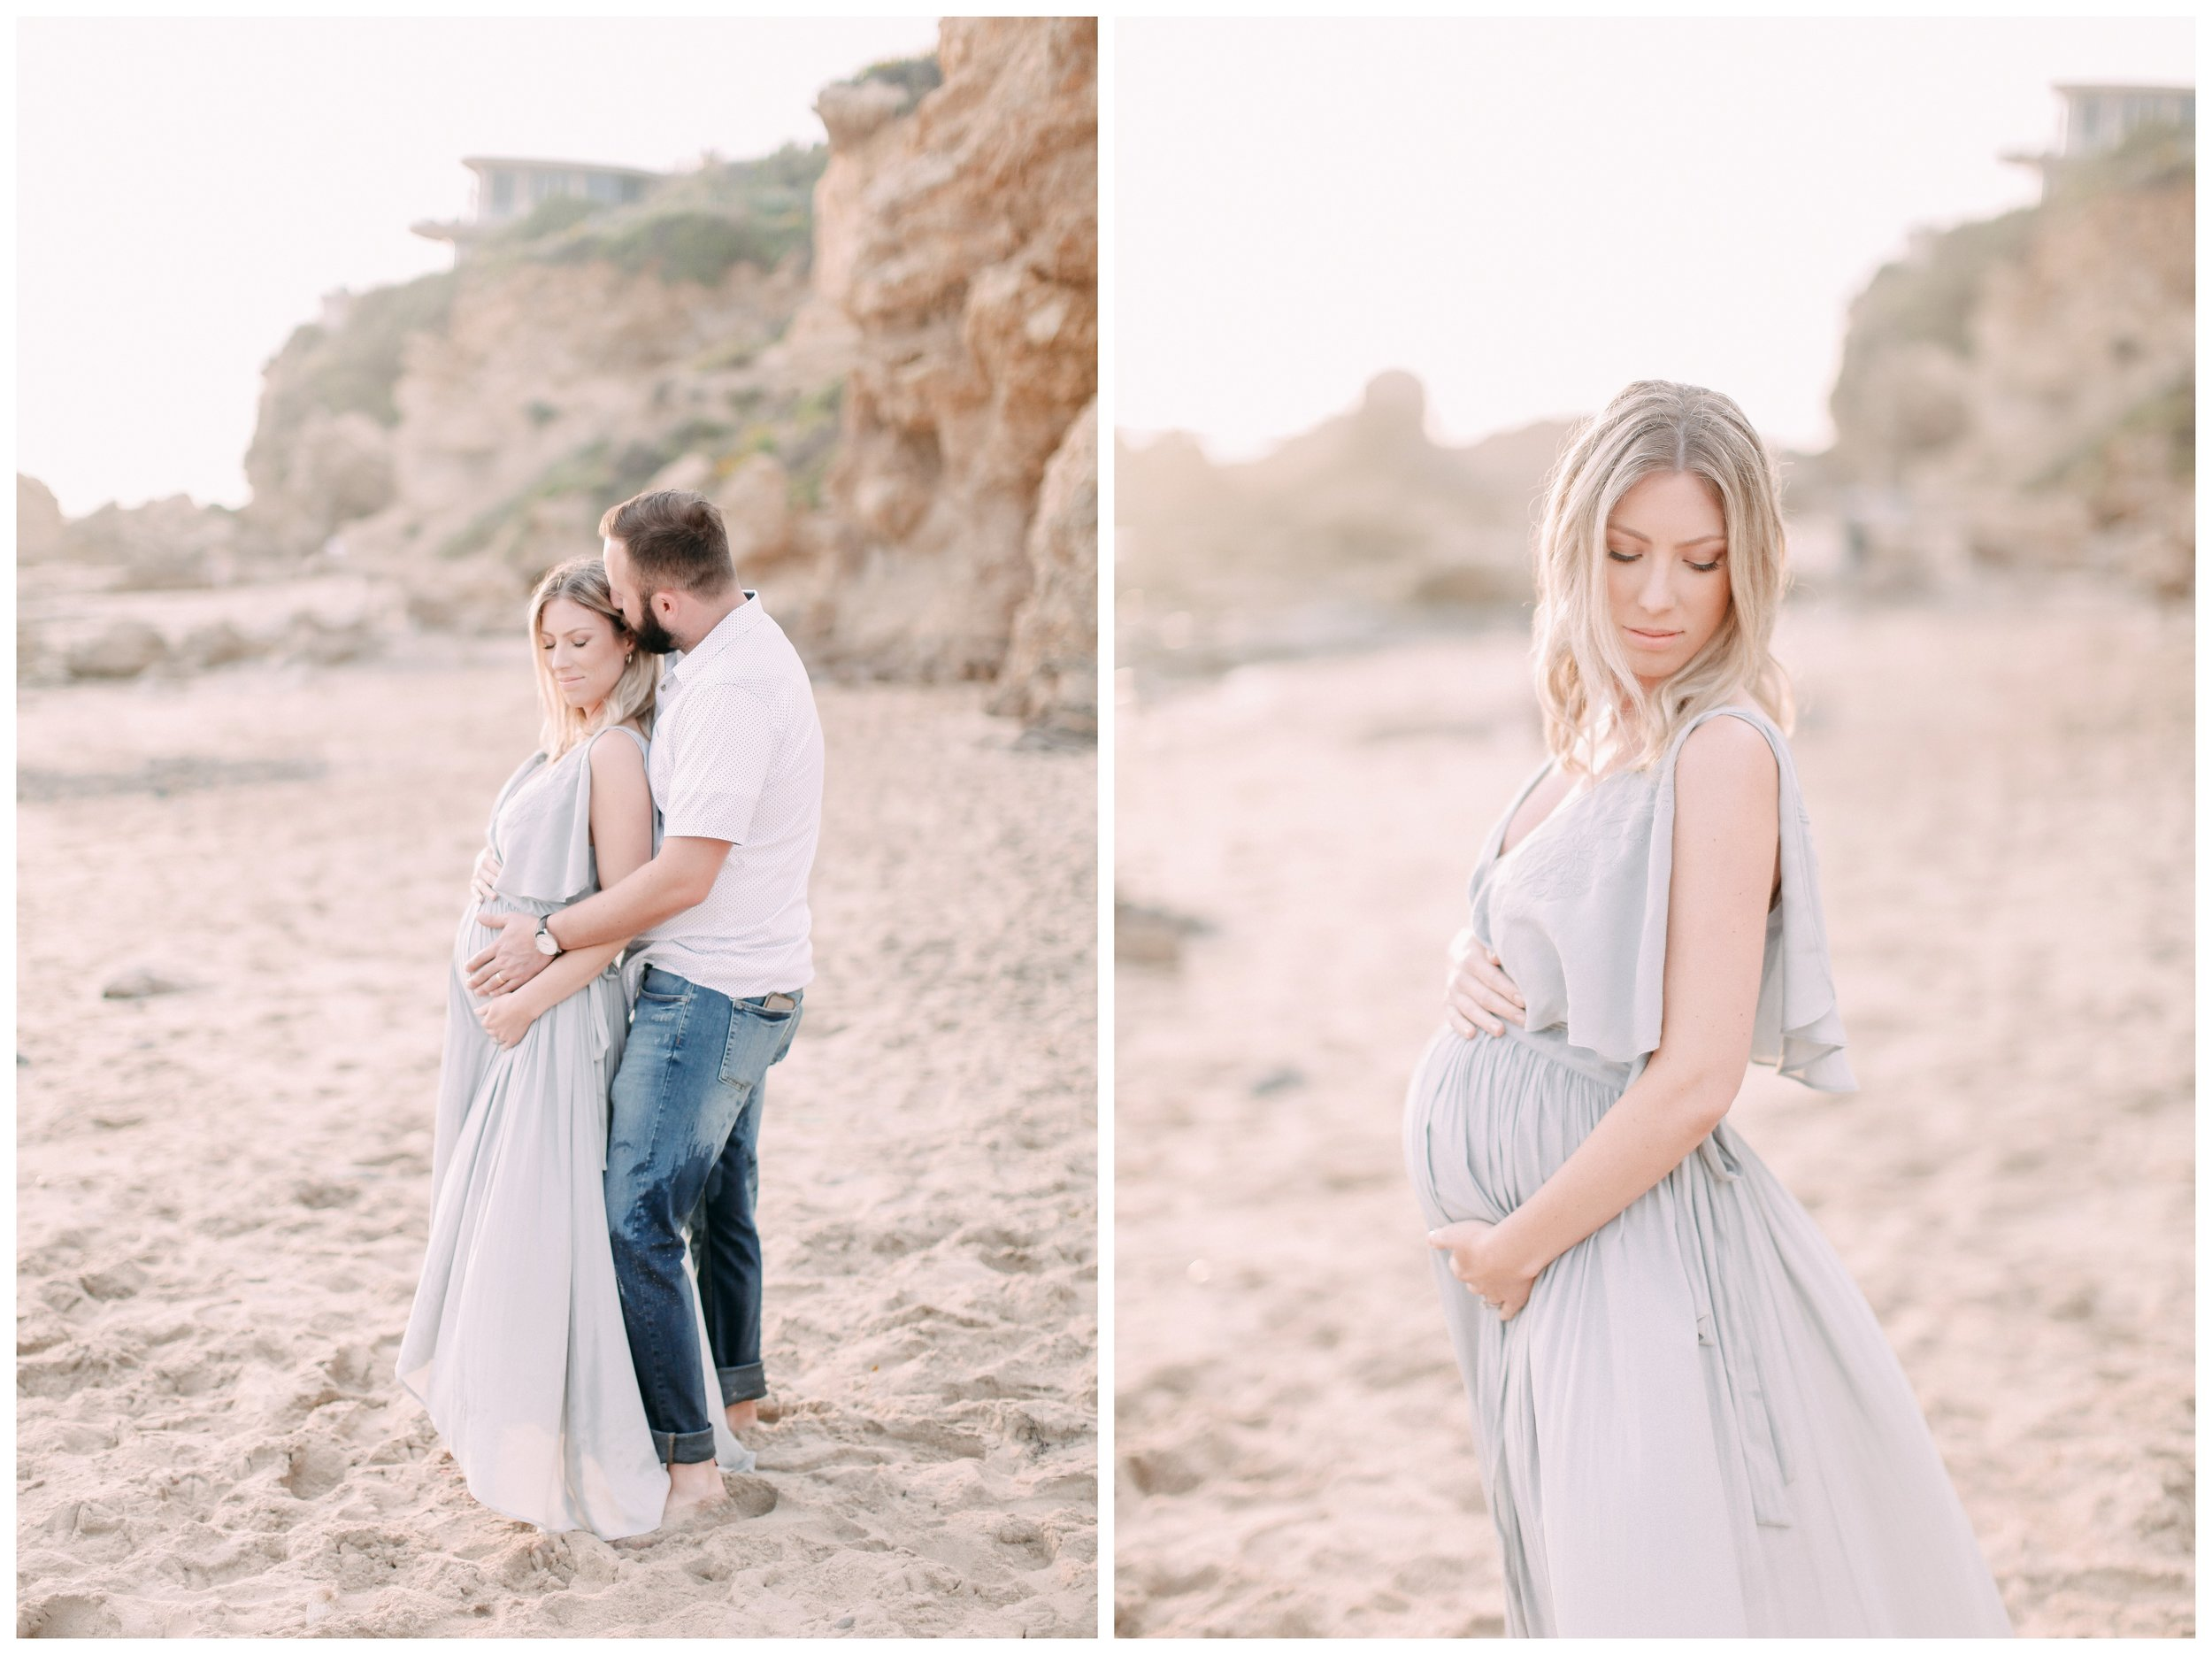 Orange_county_maternity_photographer_cori_kleckner_photography_0060.jpg